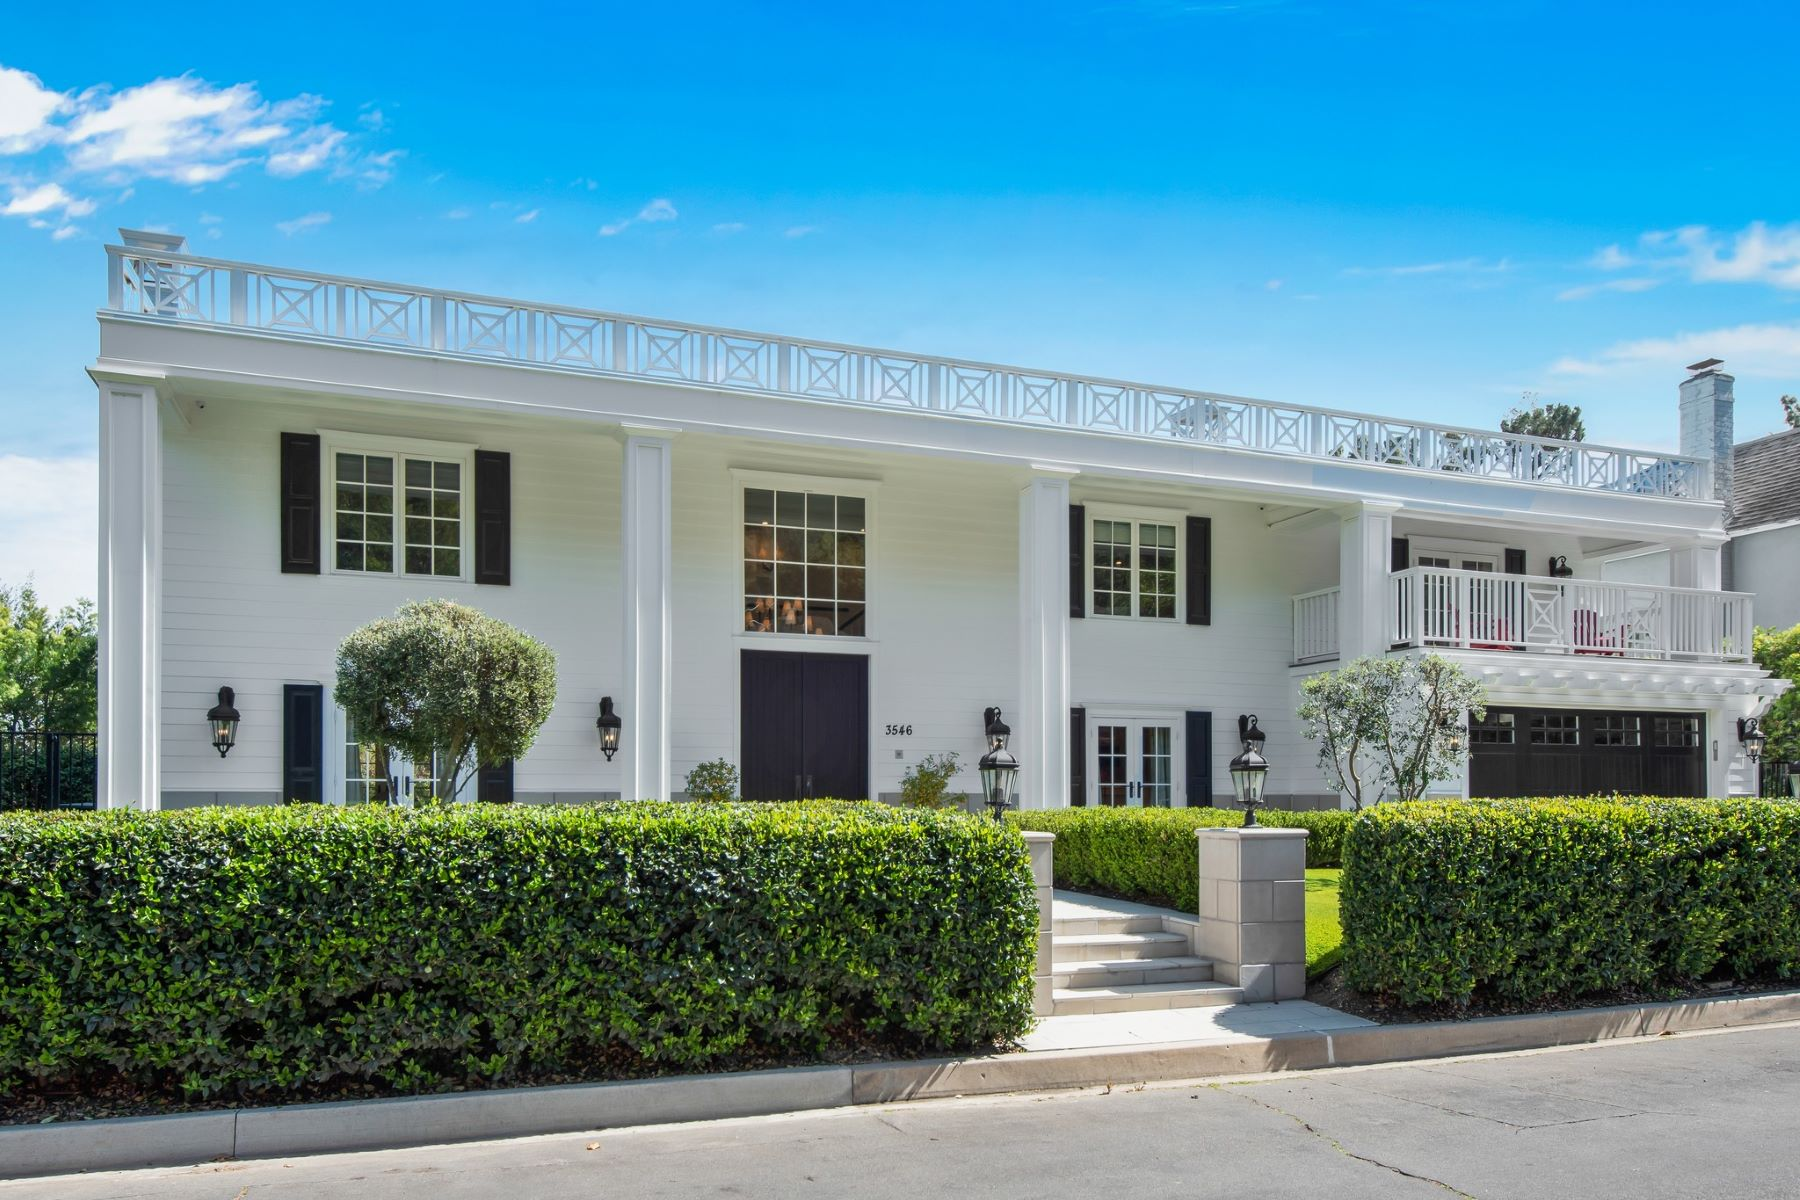 Single Family Homes for Sale at 3546 Terrace View Drive Encino, California 91436 United States